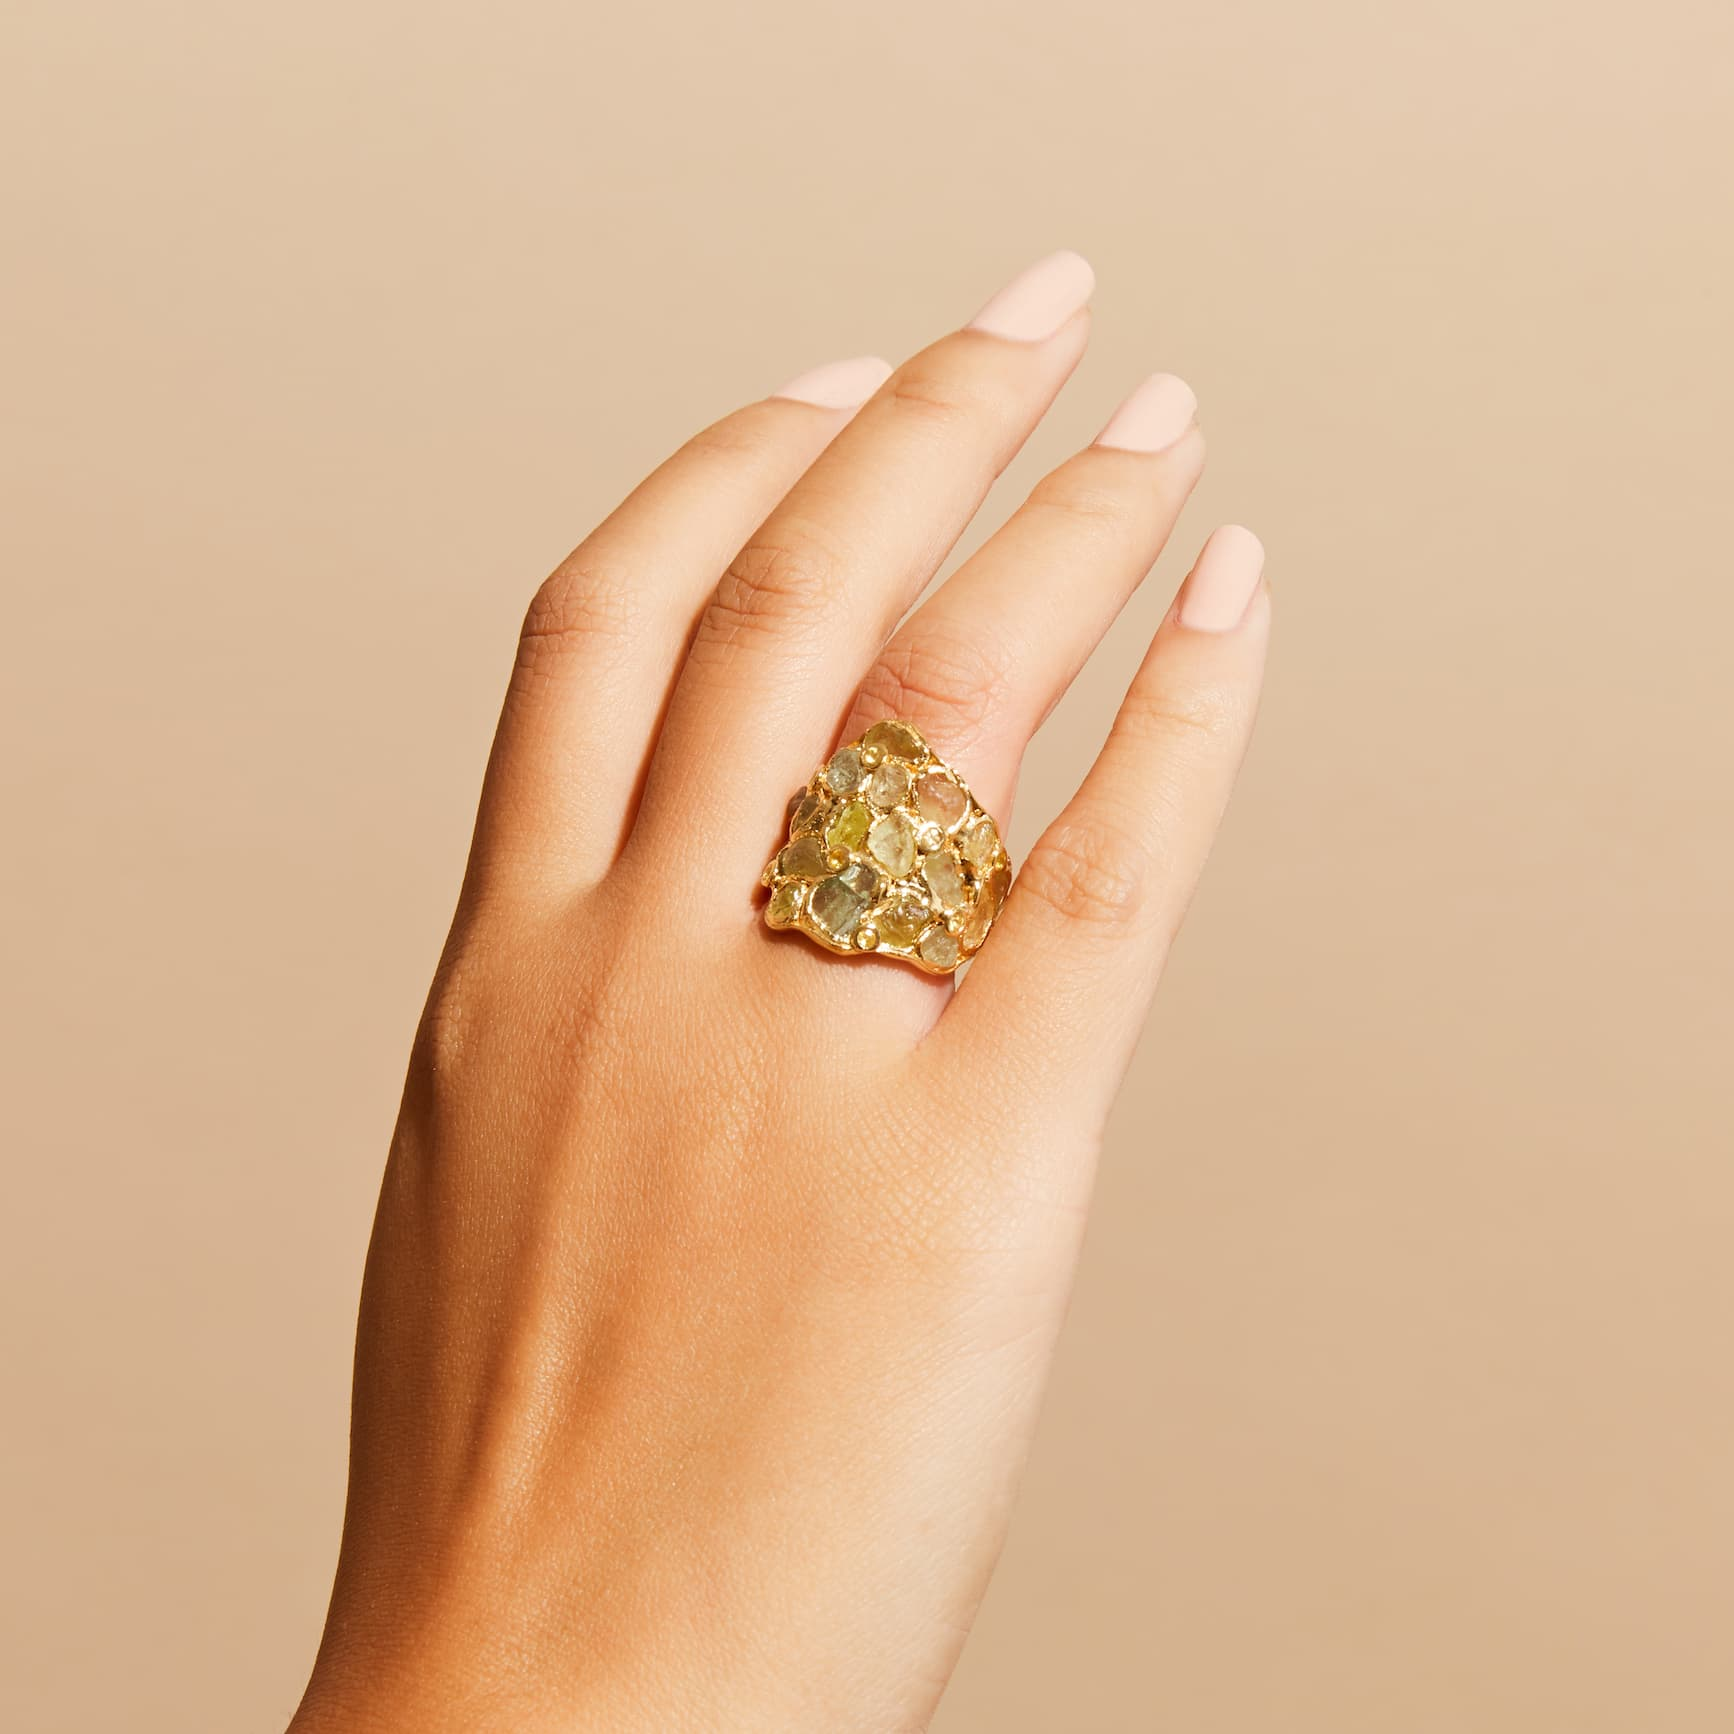 Tiara Chrysoberyl and Yellow Sapphire Ring